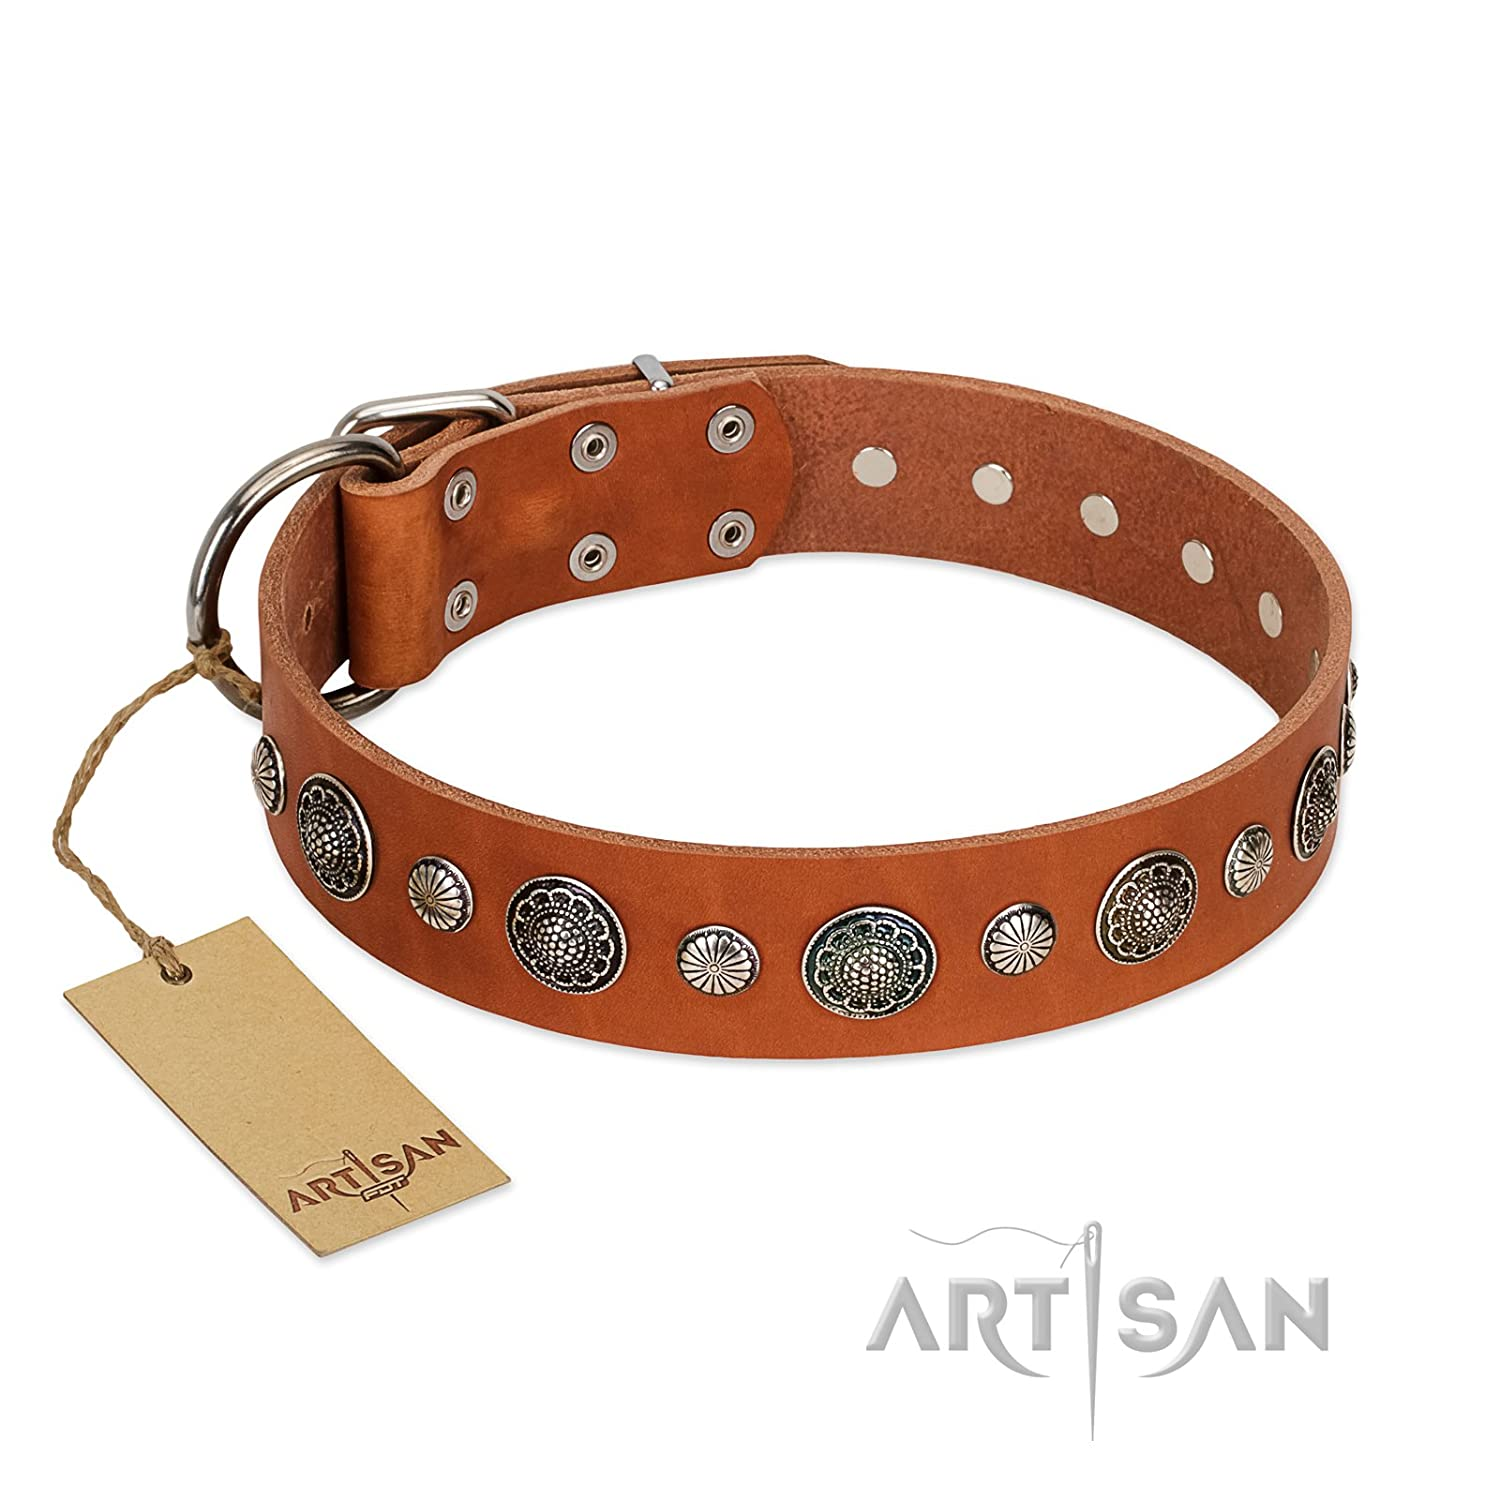 20 inch FDT Artisan 20 inch Tan Leather Dog Collar Vintage Elegance Exclusive Handcrafted Item 1 1 2 inch (40 mm) Wide Gift Box Included